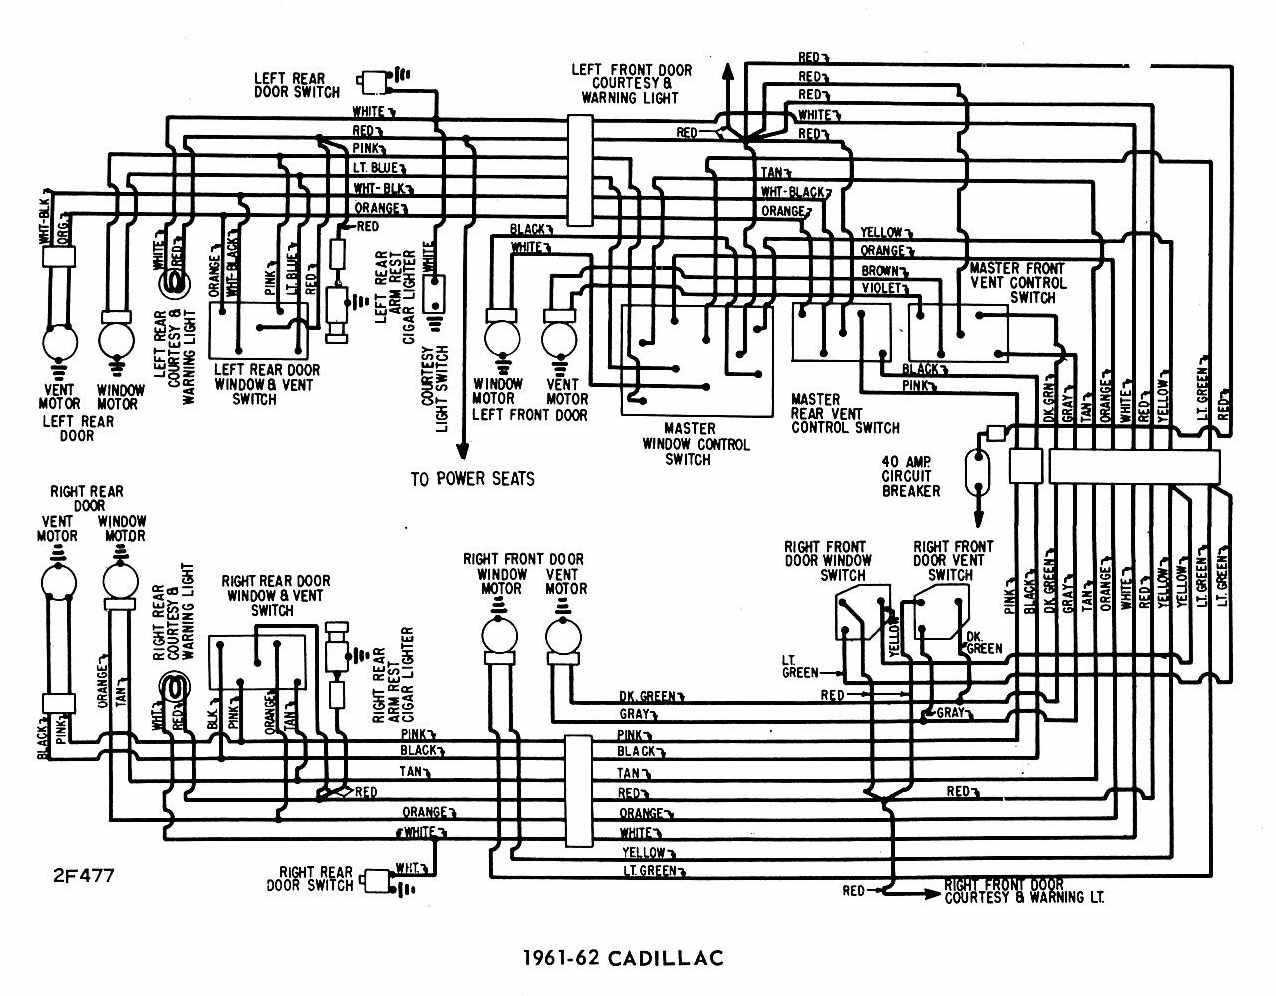 Cadillac 1961 1962 Windows Wiring on 2000 cadillac deville radio wiring diagram